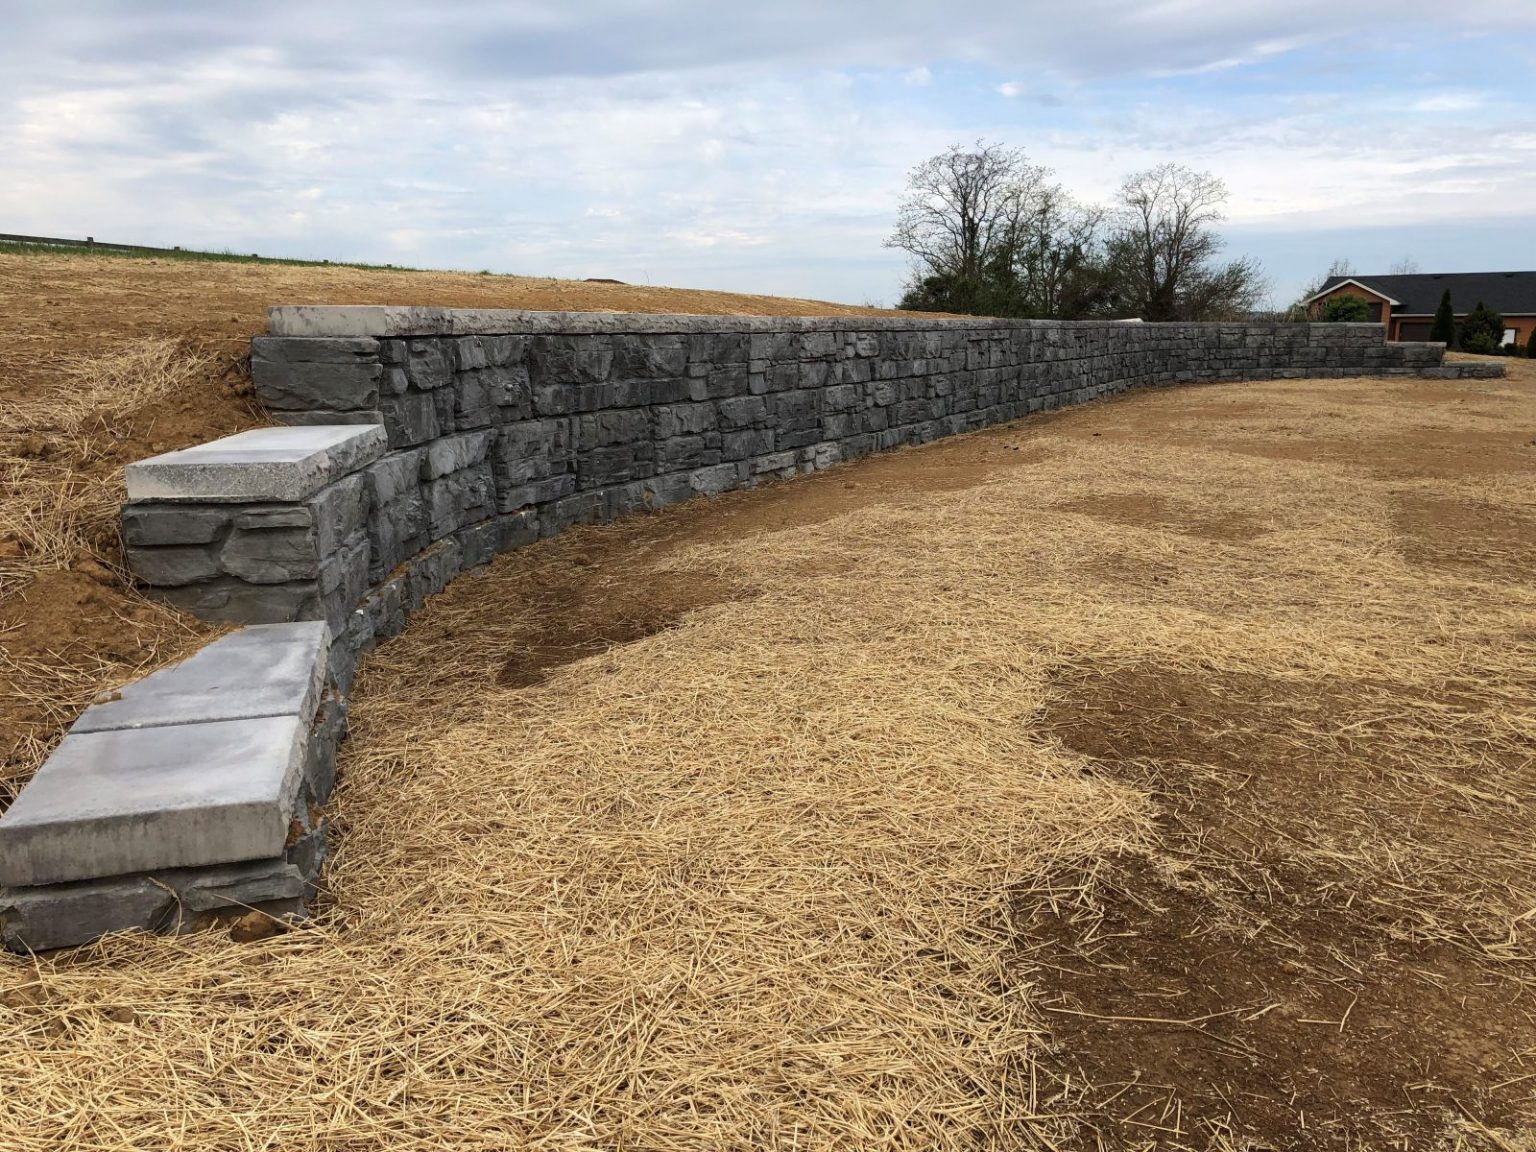 Bardstown Kentucky MaxumStone Retaining Wall with curves